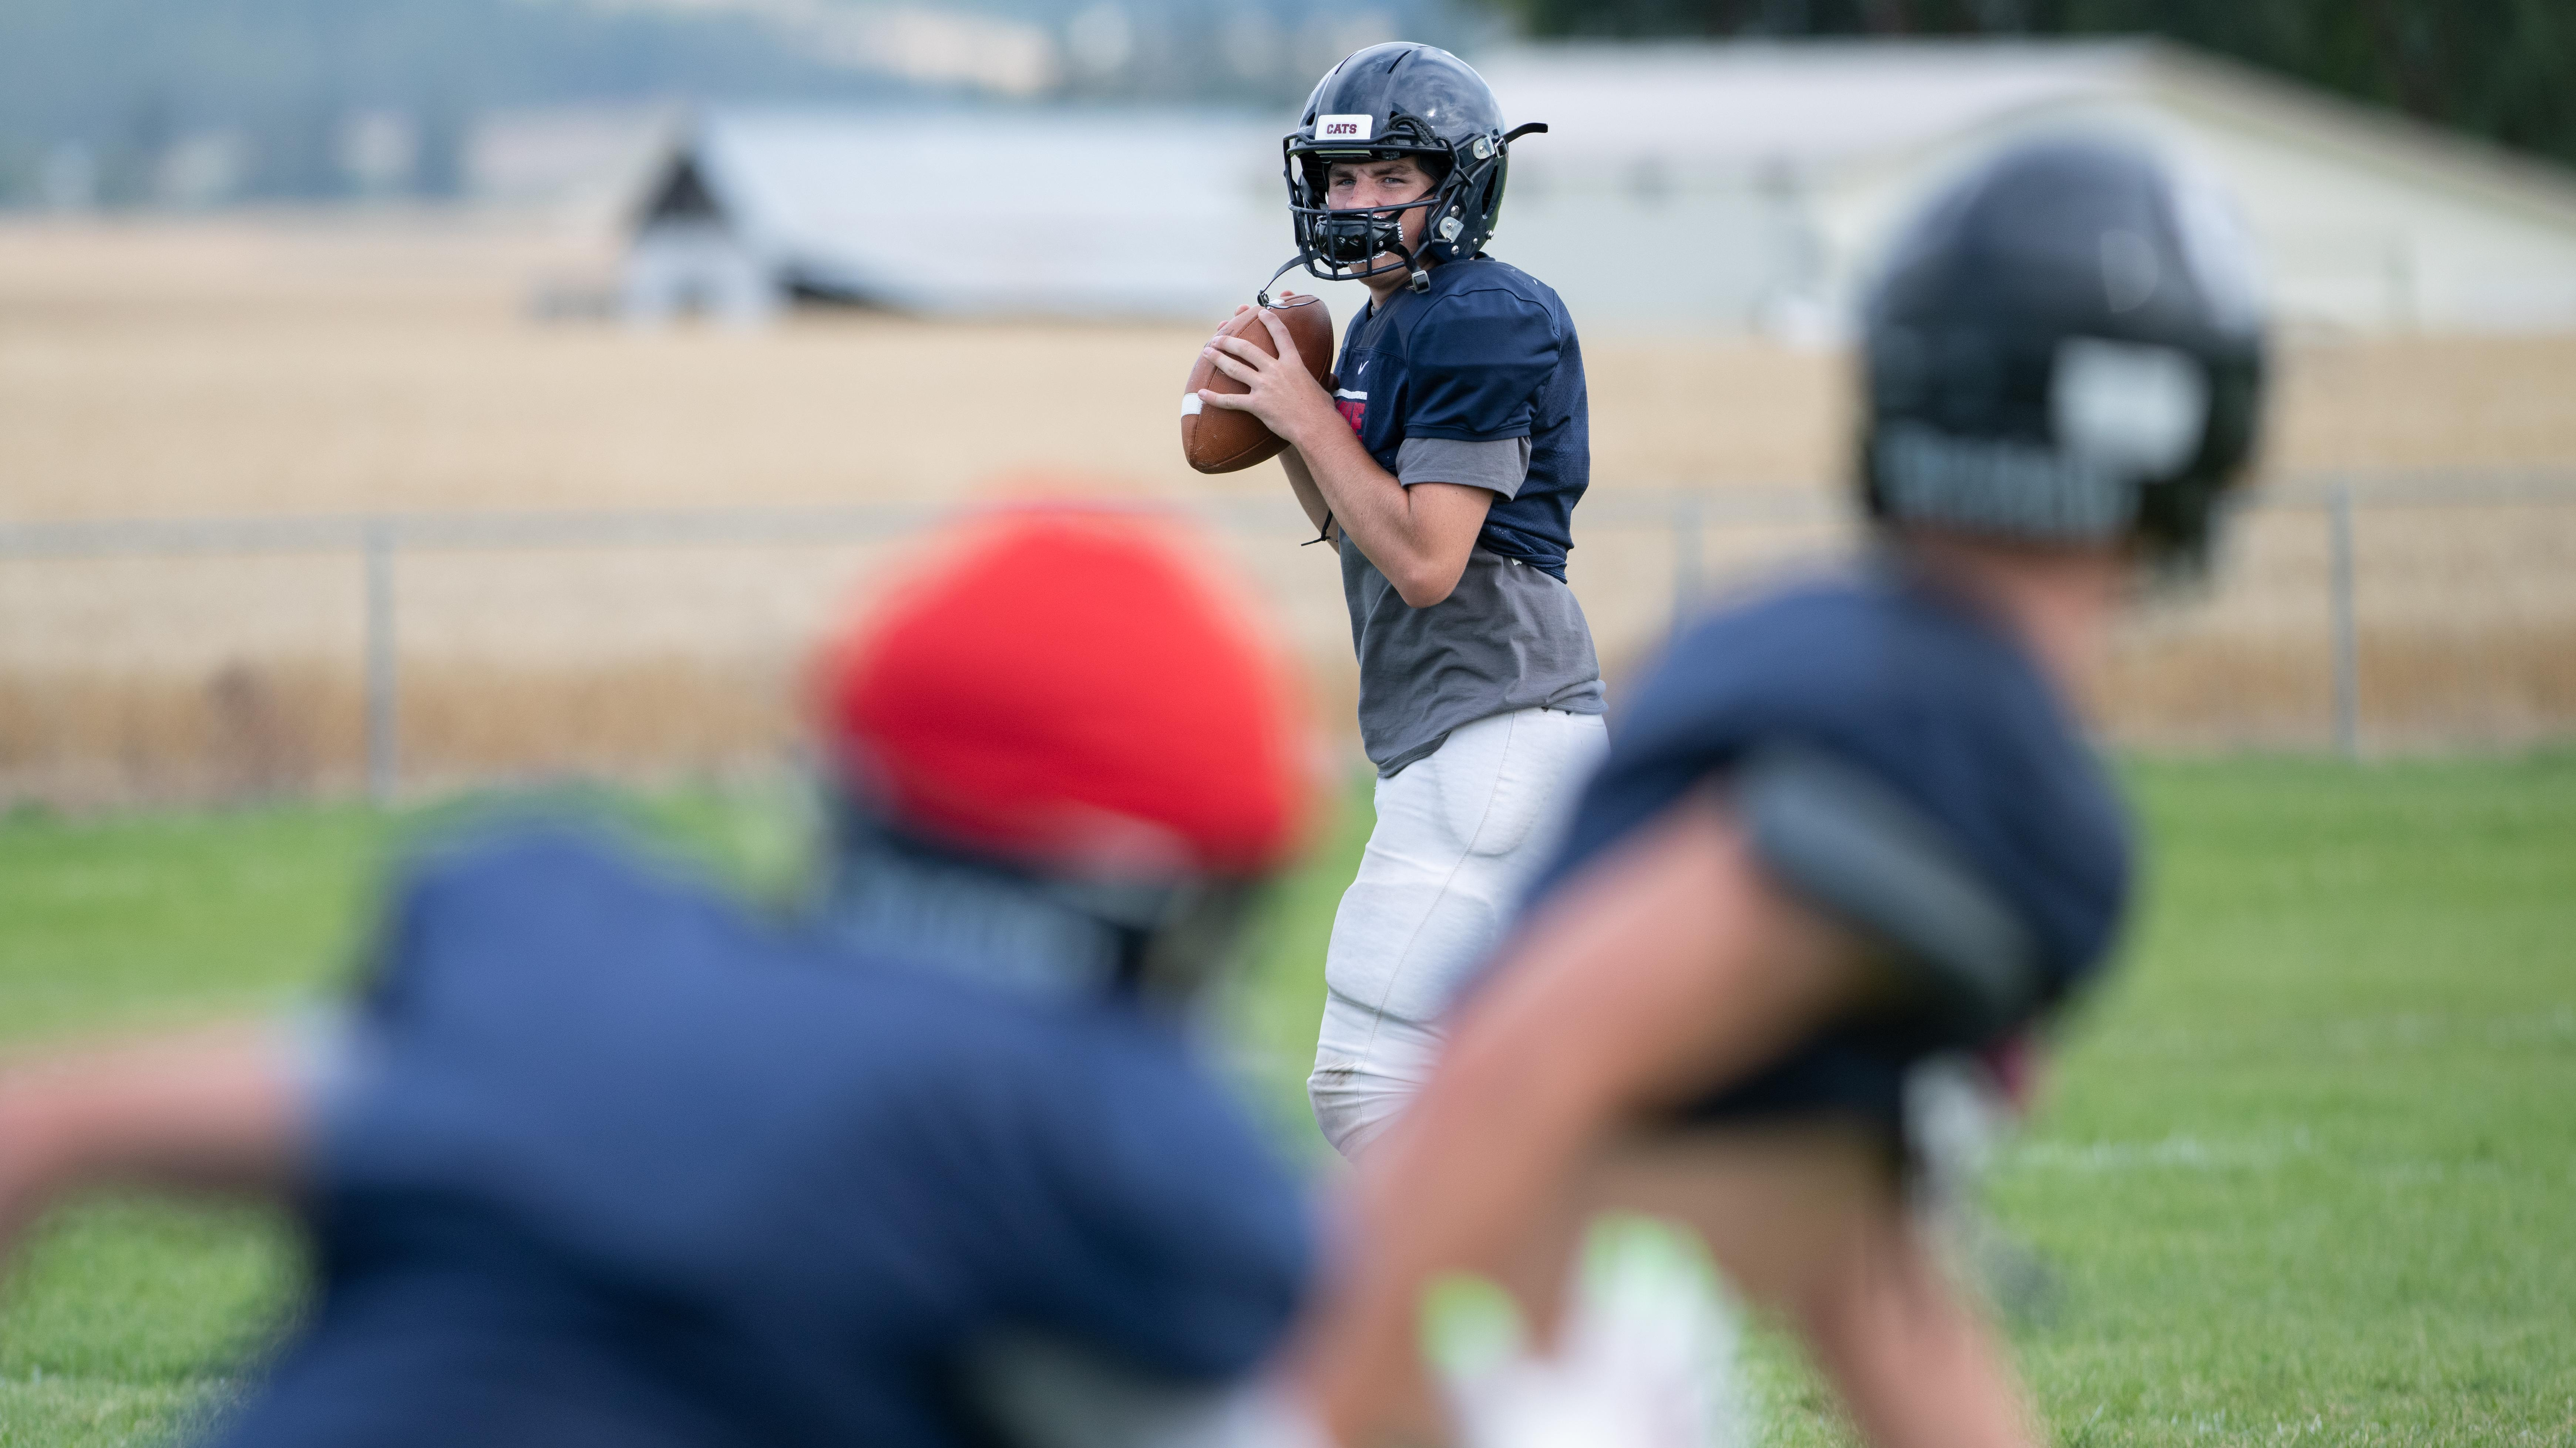 A Grip on Sports: We have questions ranging from high school